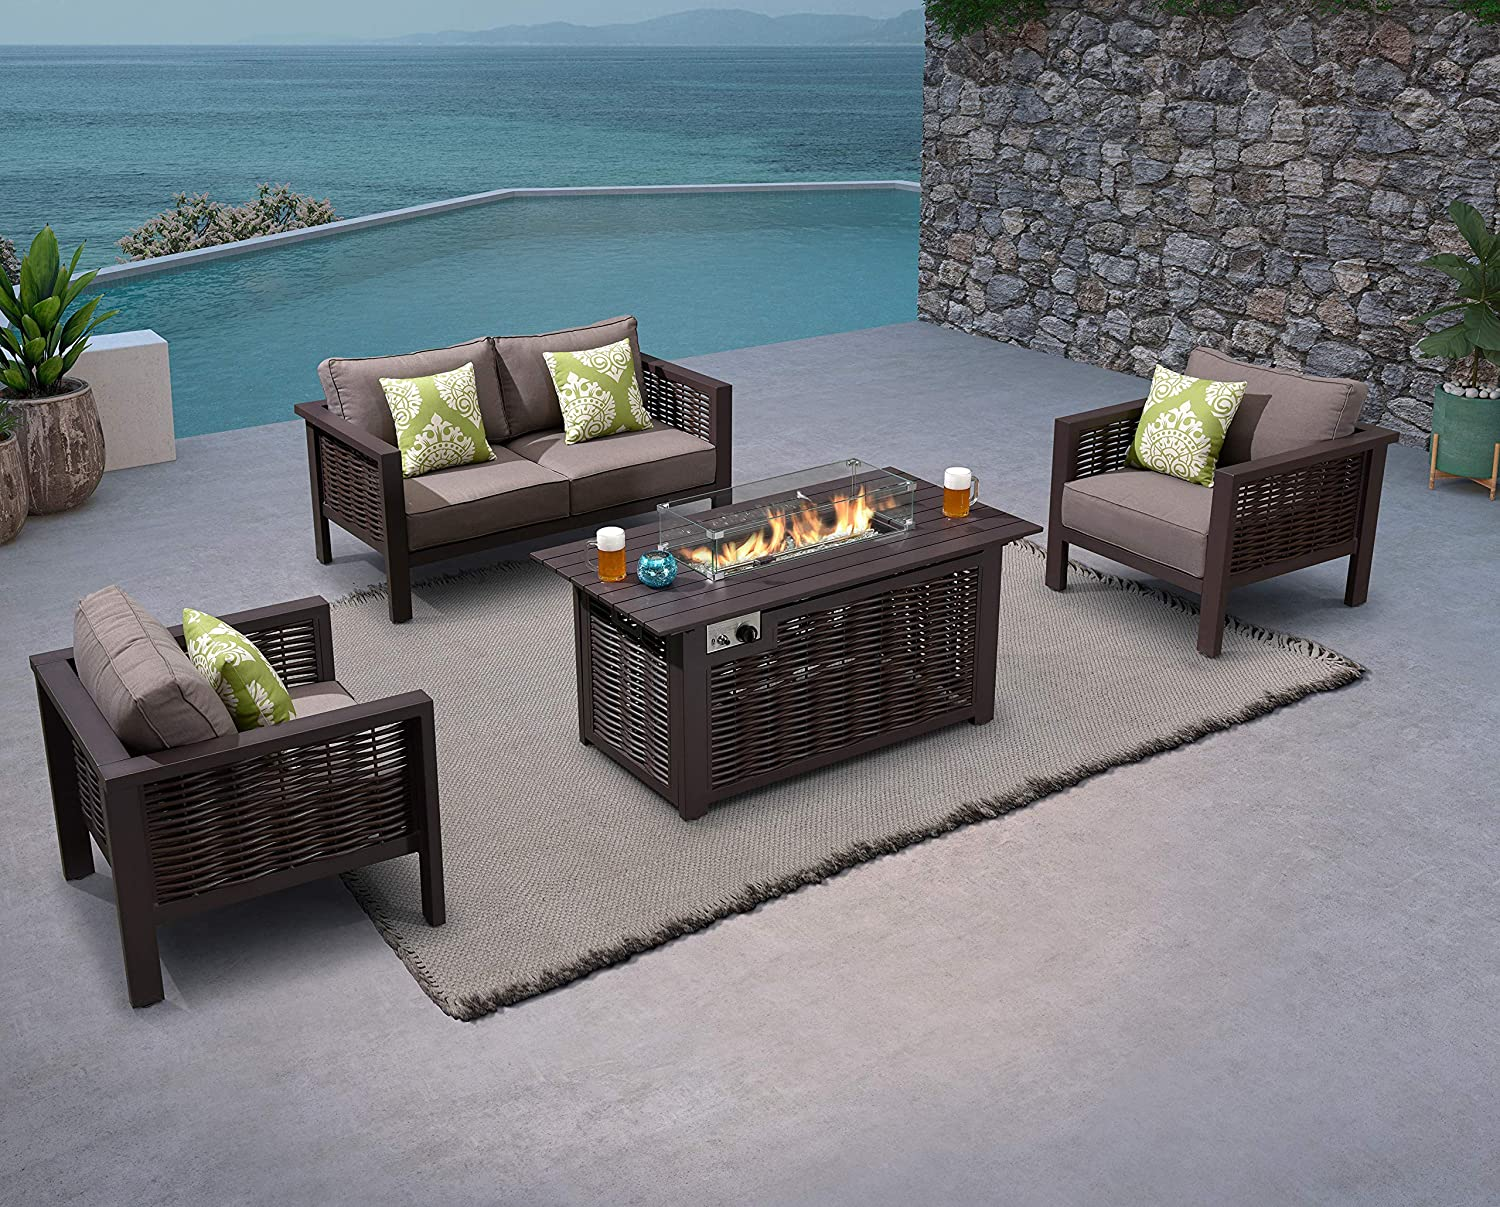 PURPLE LEAF 4 Pieces Patio Fire Pit Conversation Set, All-Weather Handcrafted Outdoor Wicker Rattan Sofa Set for Garden Backyard Deck Pool, Patio Furniture Set with Fire Pit Table